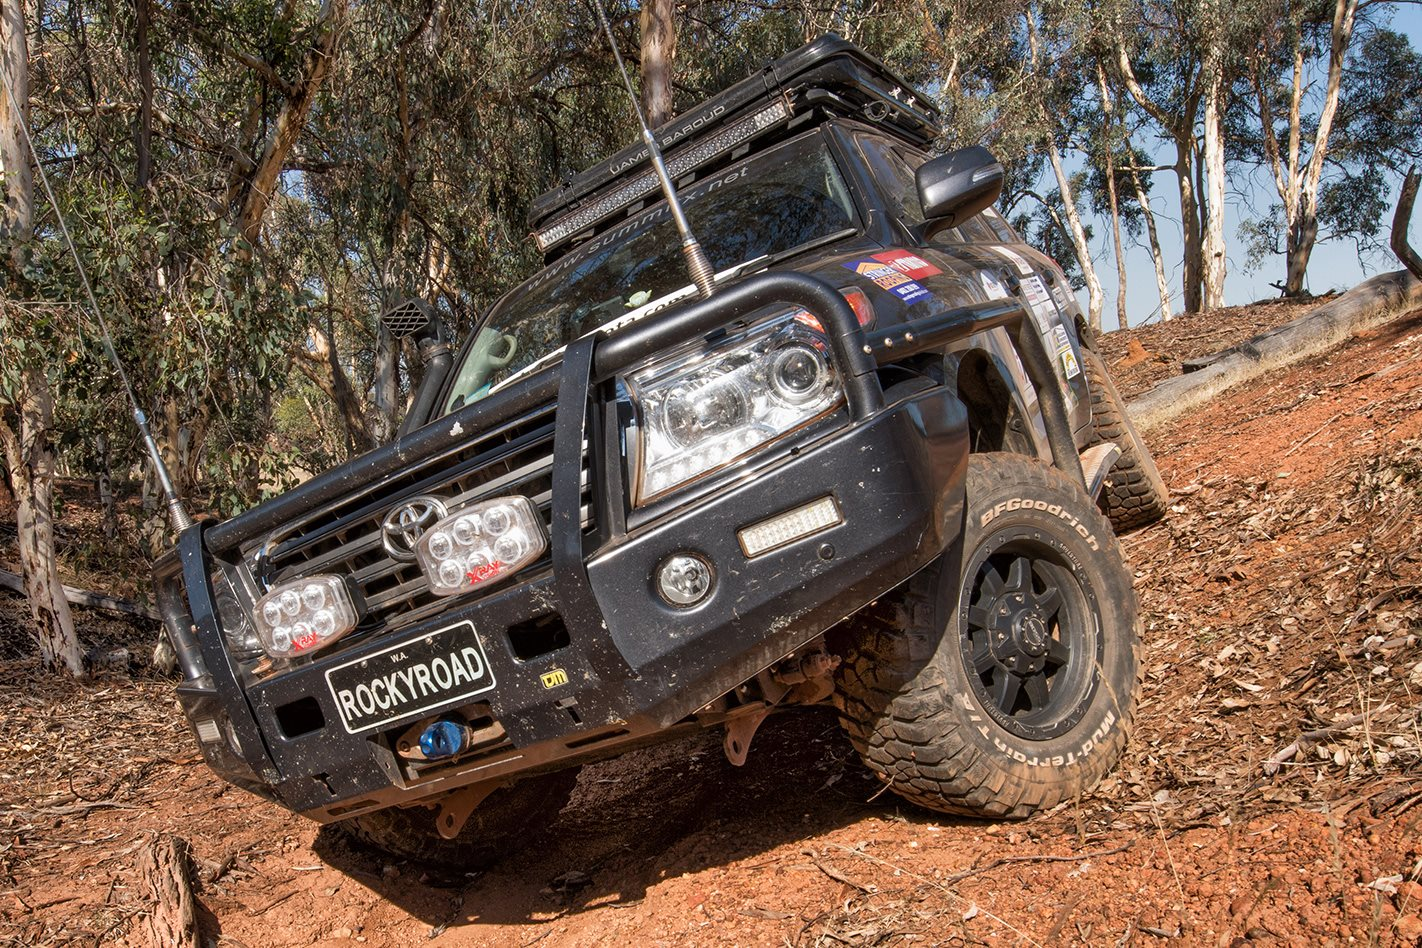 2014 Land Cruiser 200 Series off-roading